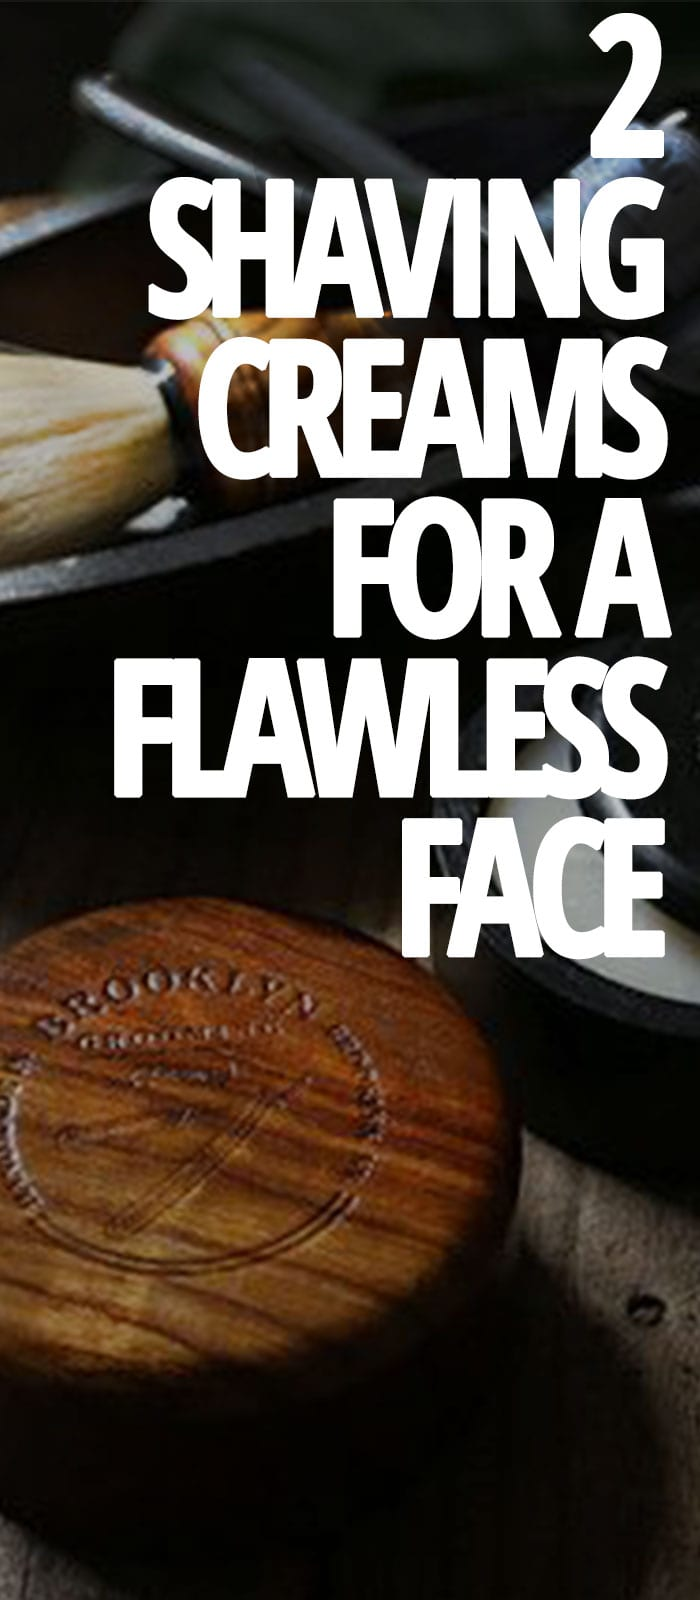 SHAVING-CREAMS-FOR-A-FLAWLESS-FACE